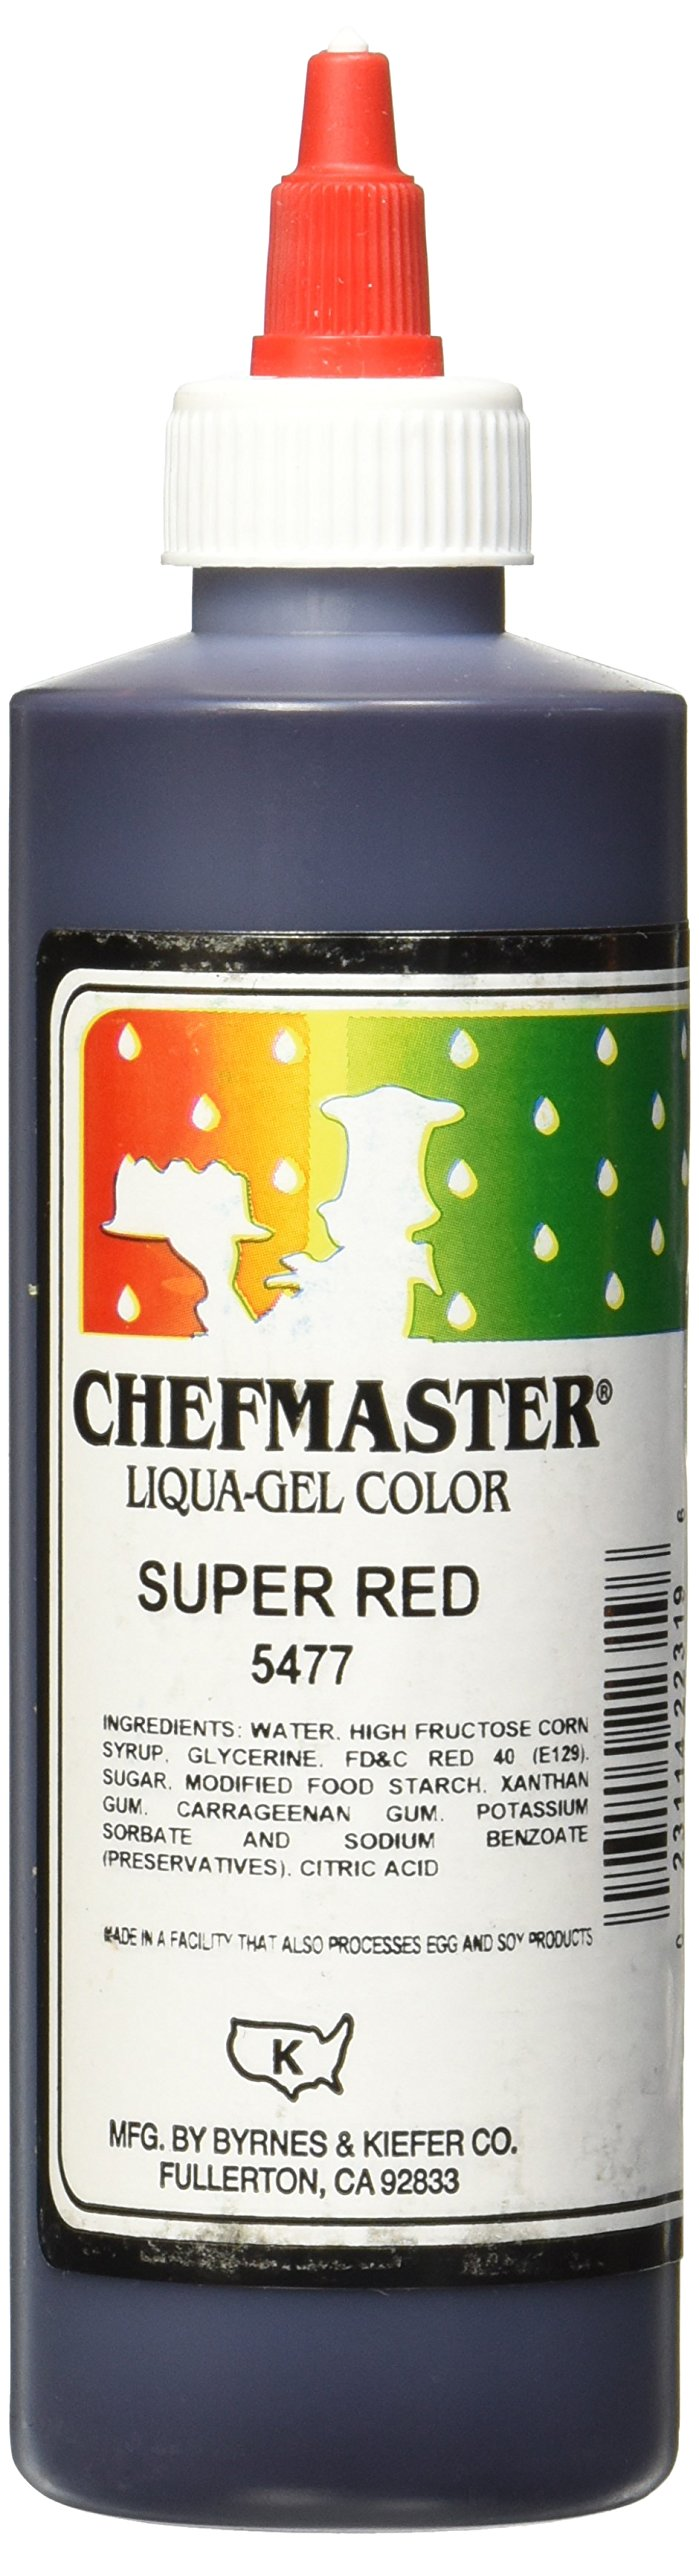 Chefmaster Liqua-Gel Food Color, 10.5-Ounce, Super Red